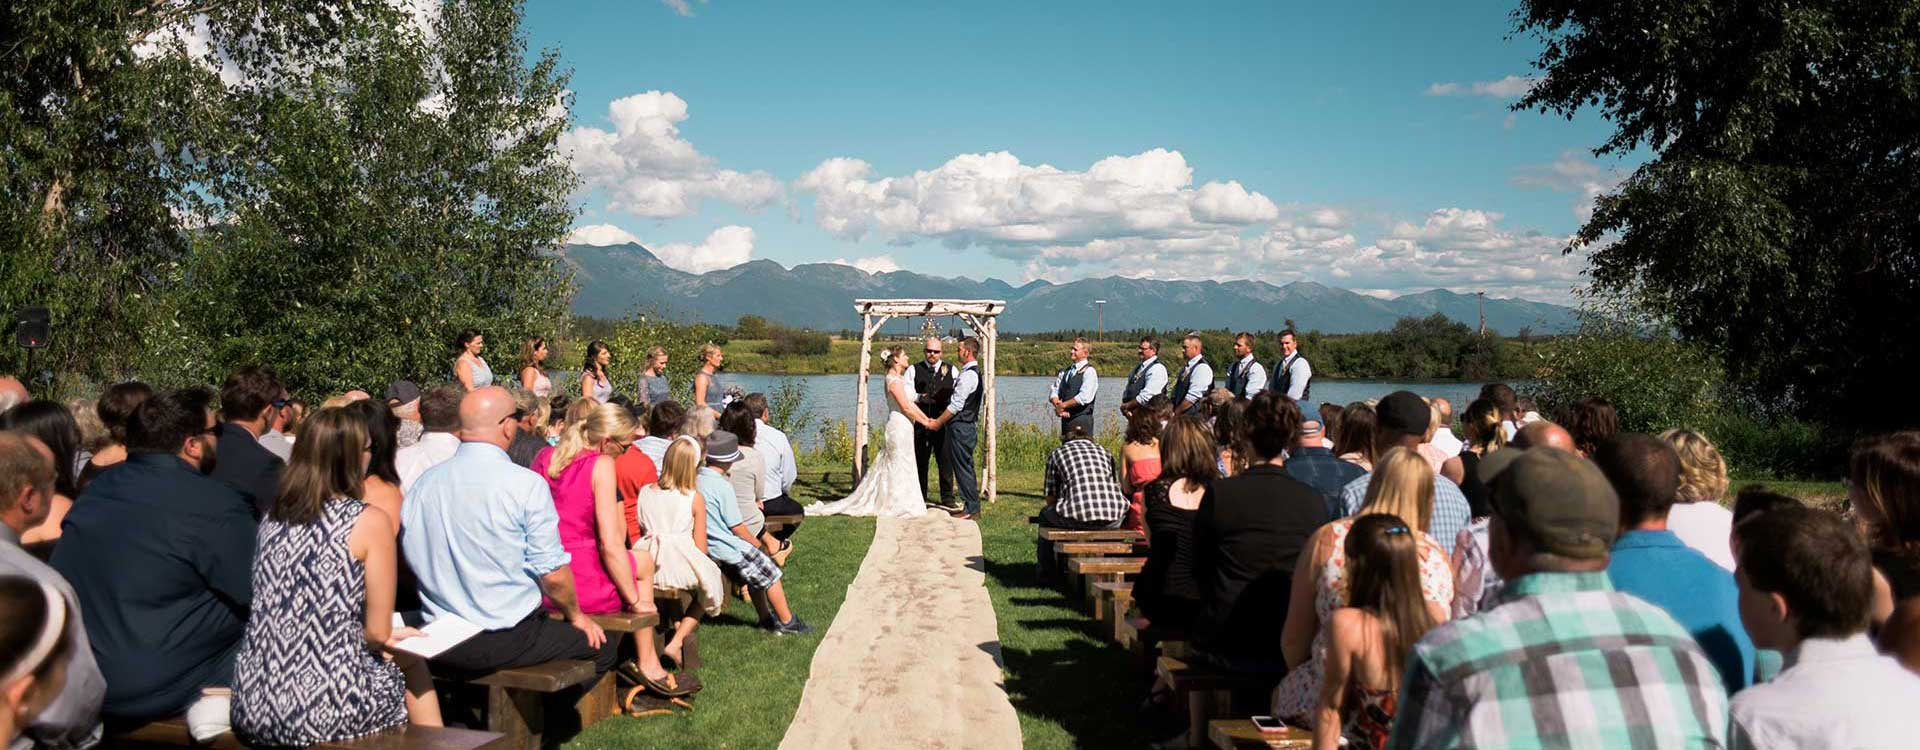 Rentals for weddings in Whitefish Montana, Kalispell, Columbia Falls, Bigfork, West Glacier, Glacier National Park, Eureka, Lakeside, Polson, Missoula MT